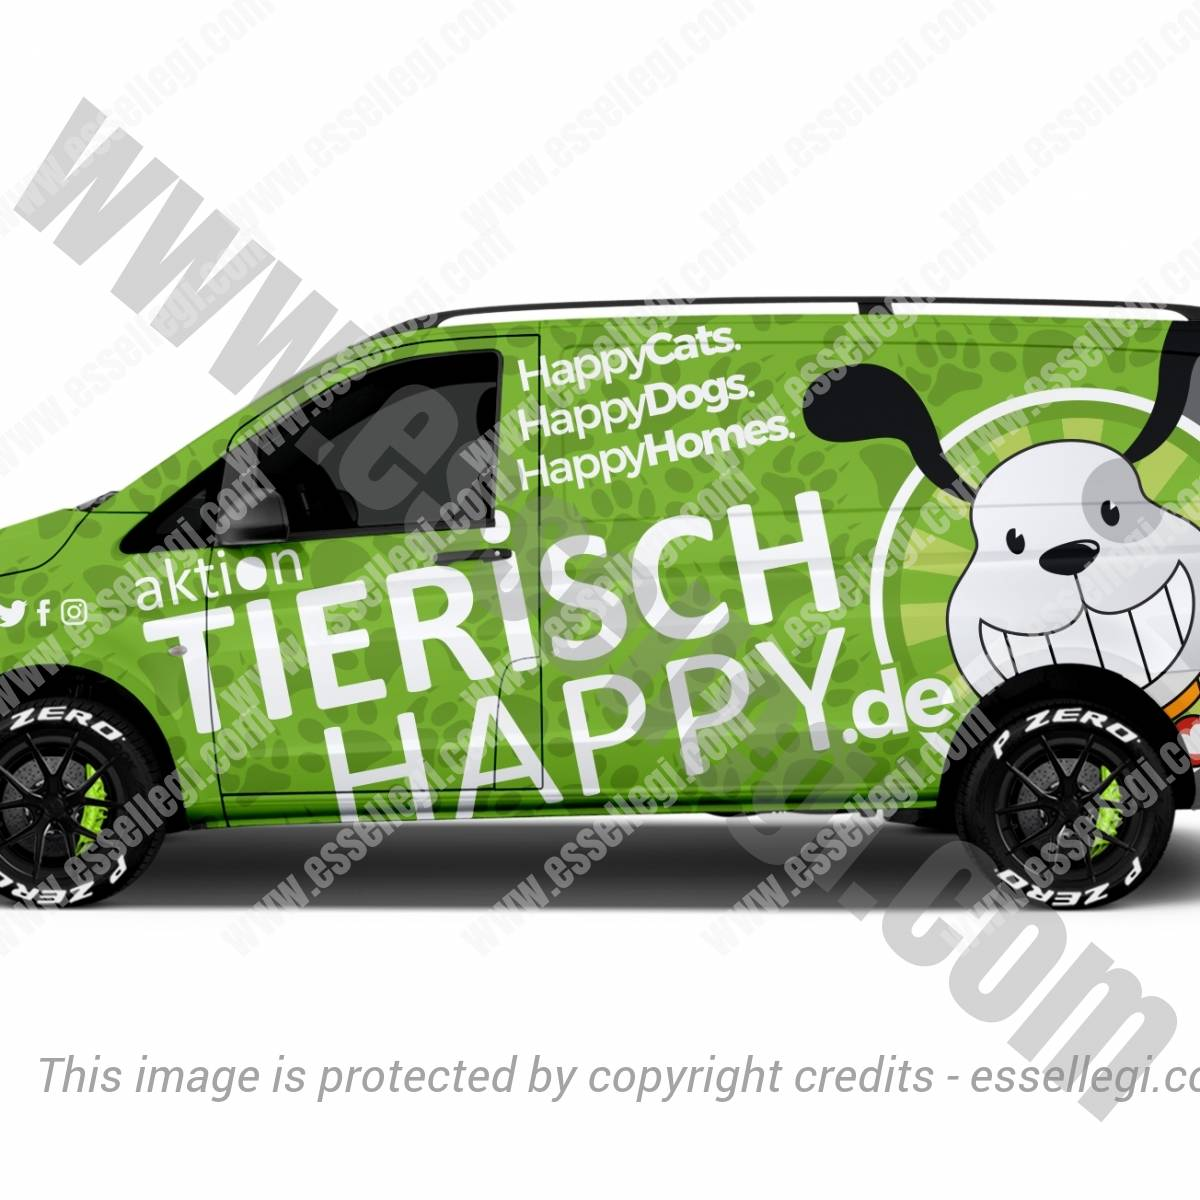 ACTION TIERISCH HAPPY | VAN WRAP DESIGN 🇩🇪